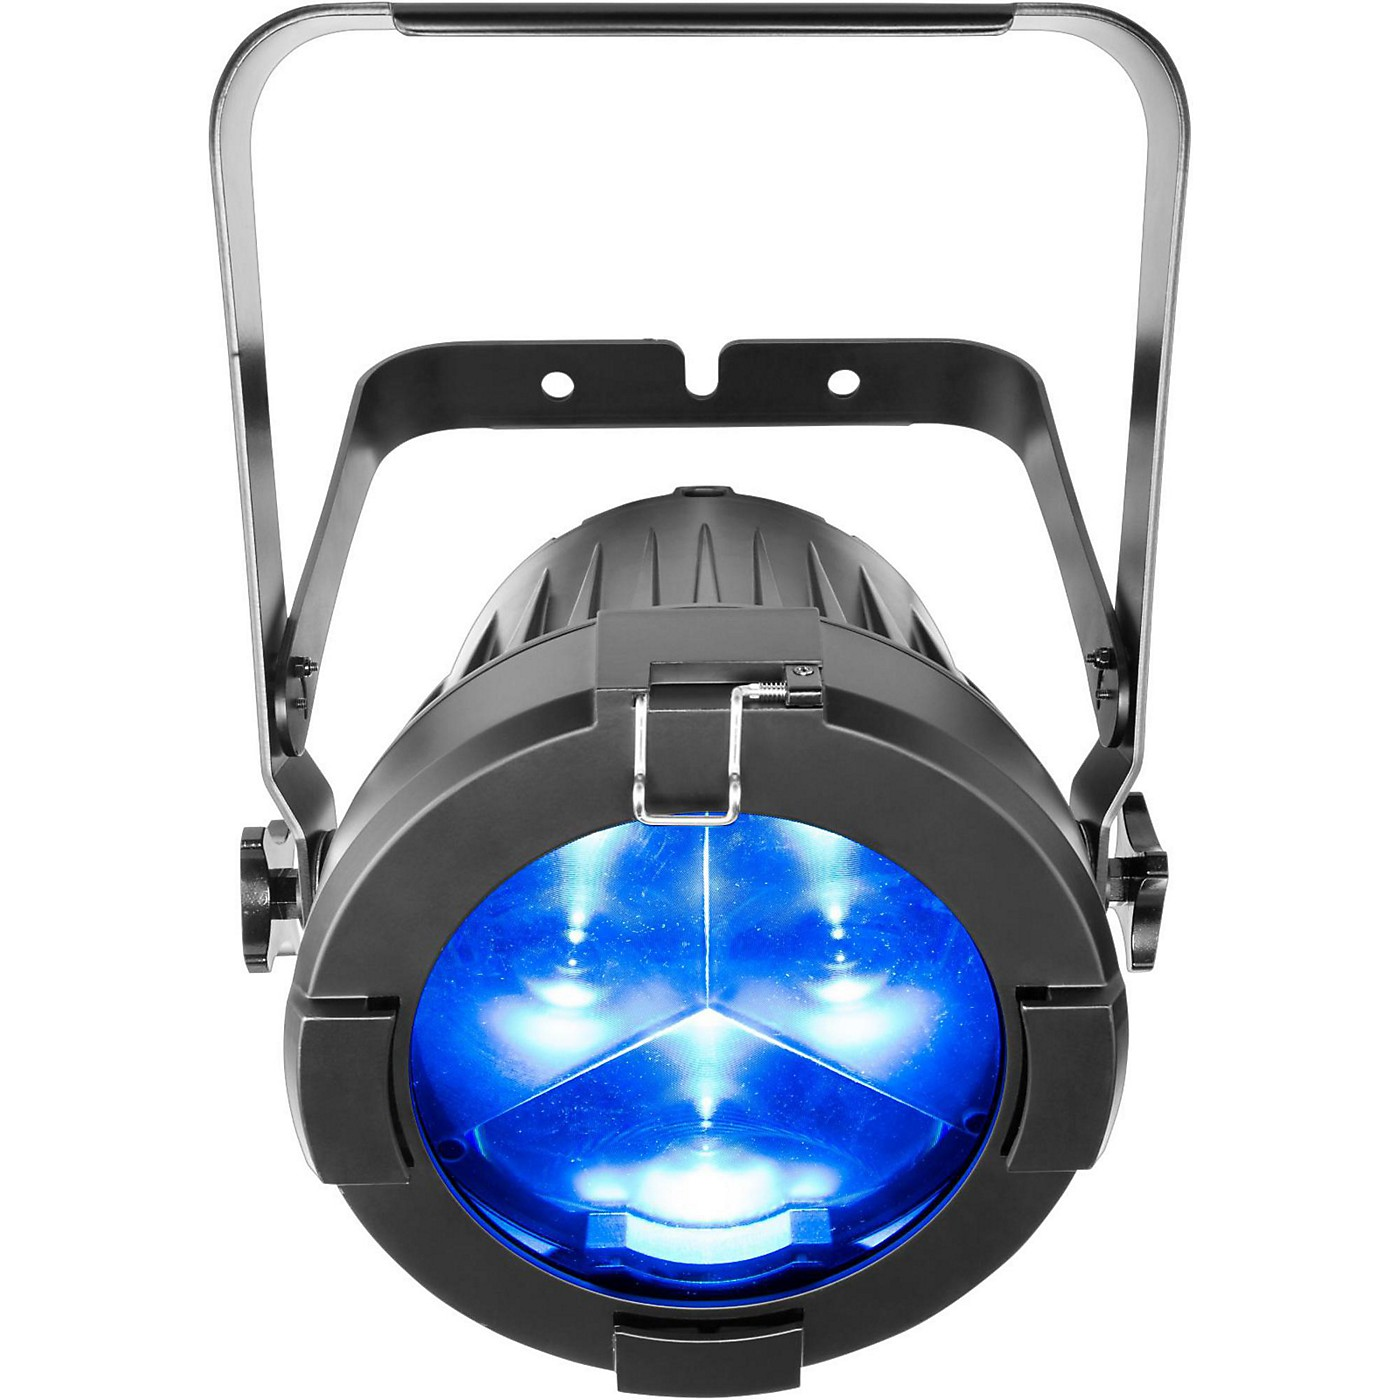 CHAUVET Professional COLORado 3 Solo RGBW LED Outdoor Zooming PAR Wash Light thumbnail